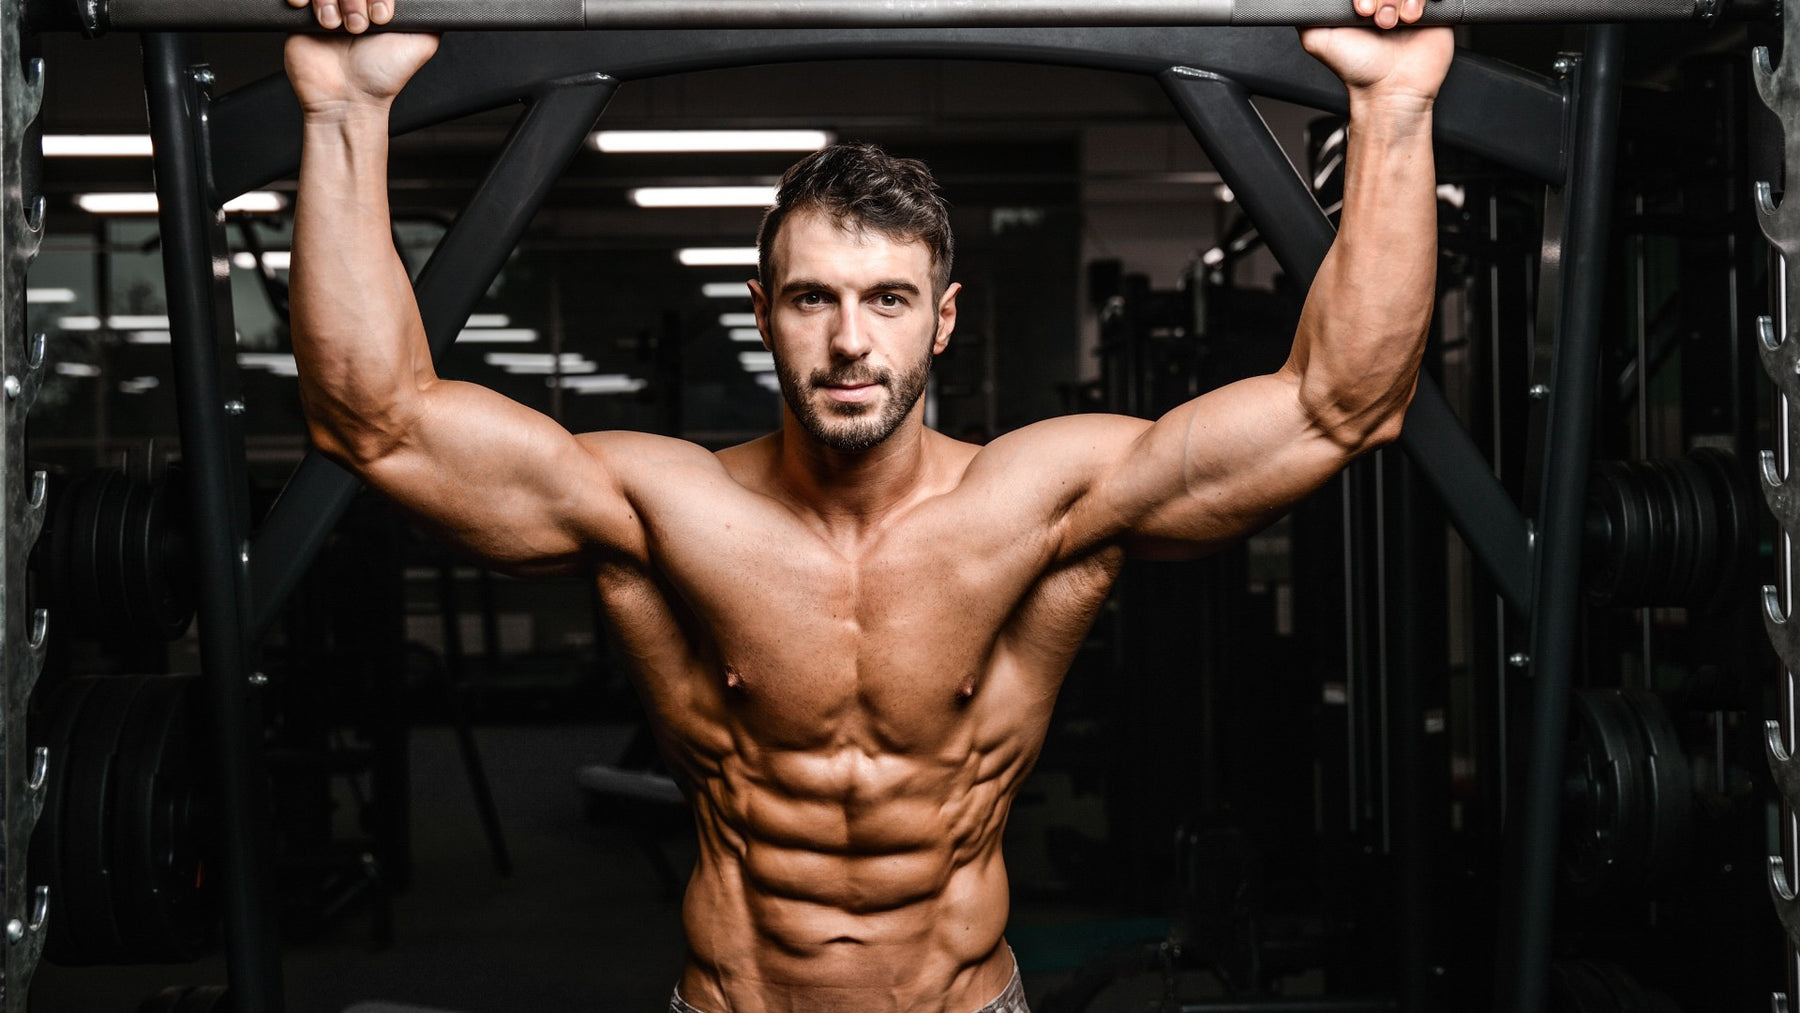 The Reverse Crunch For 6-Pack Abs